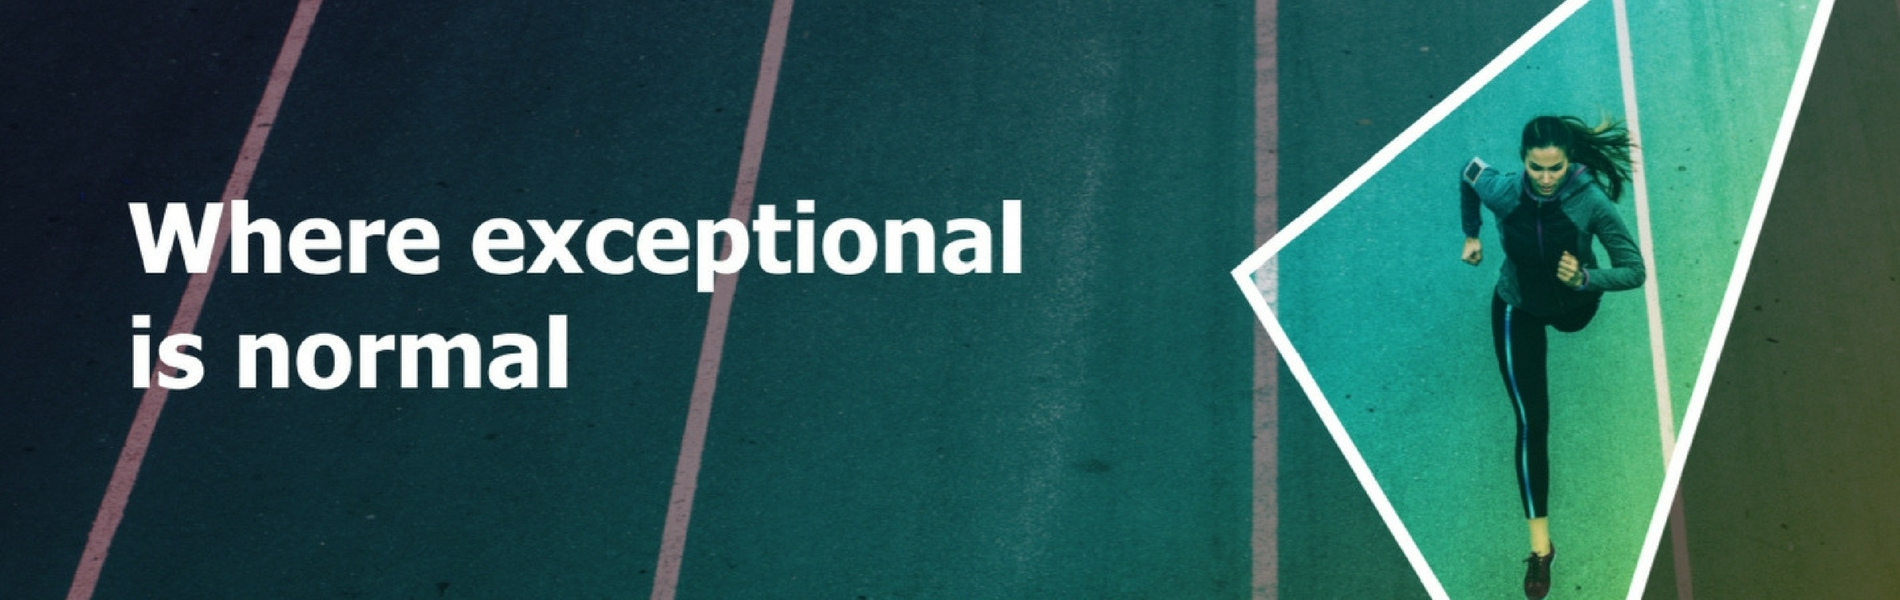 Where exceptional is normal 1900x600